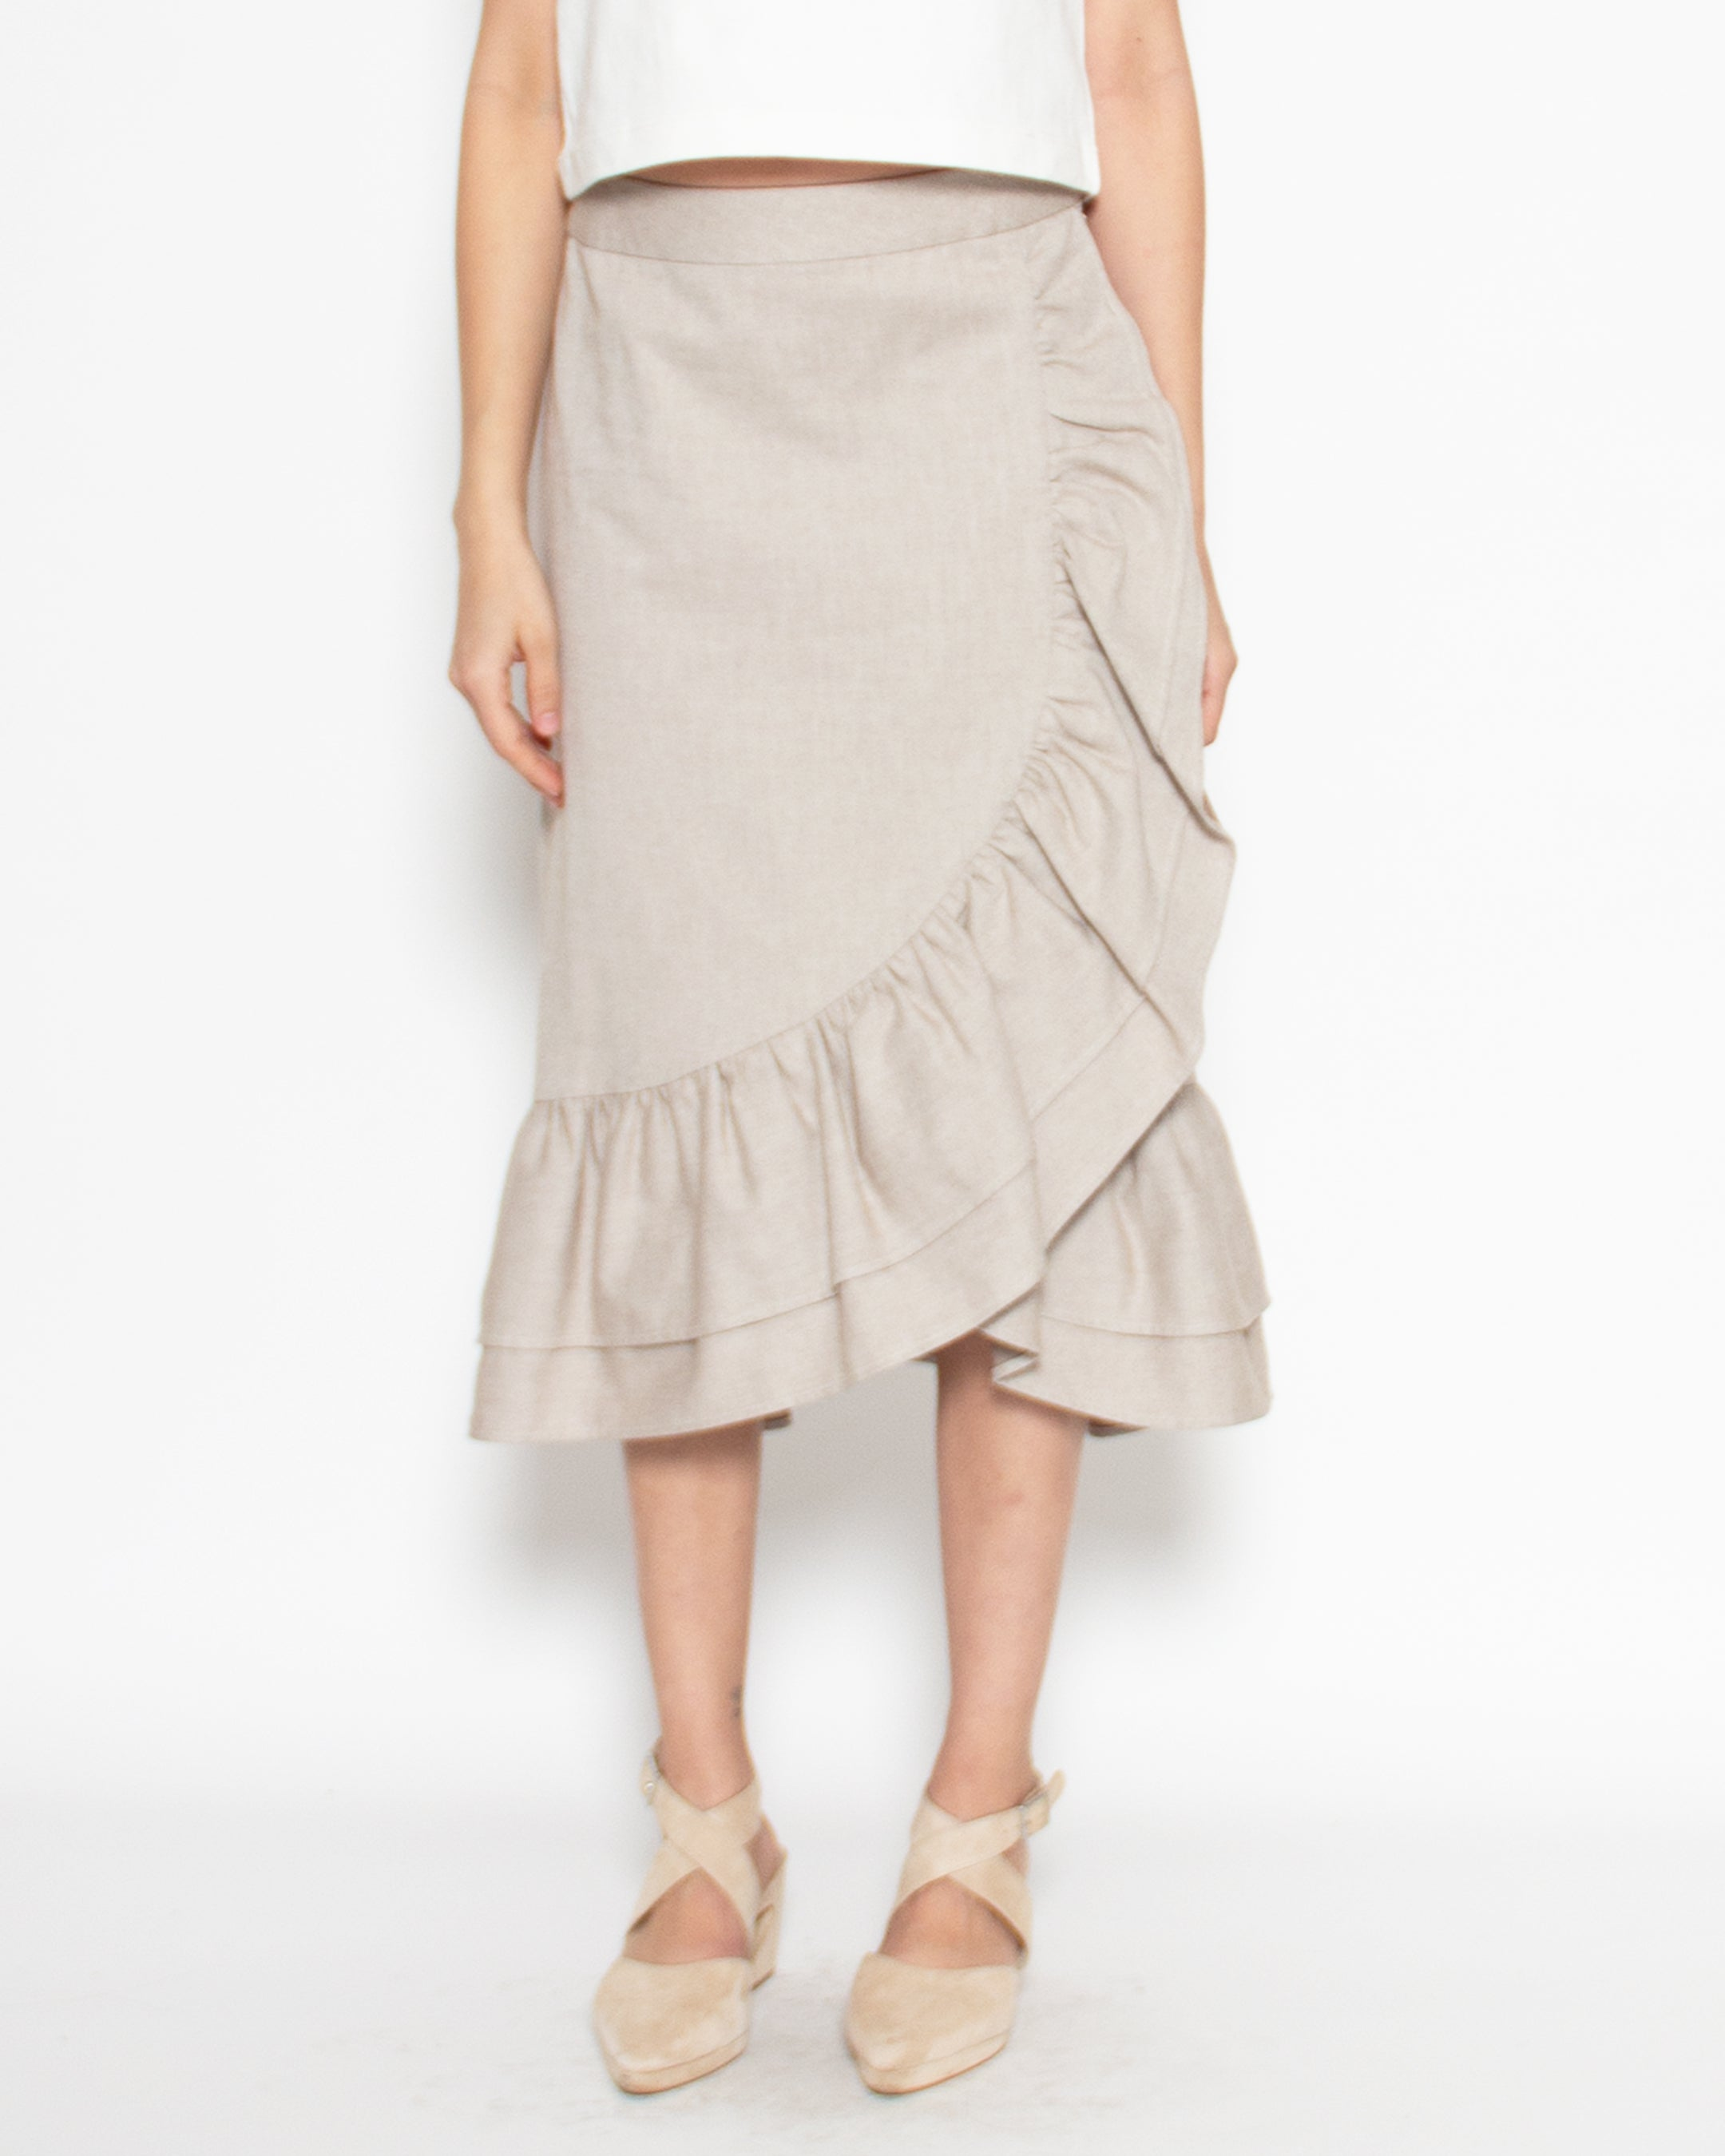 Narella Skirt in Oat Organic Cotton Twill